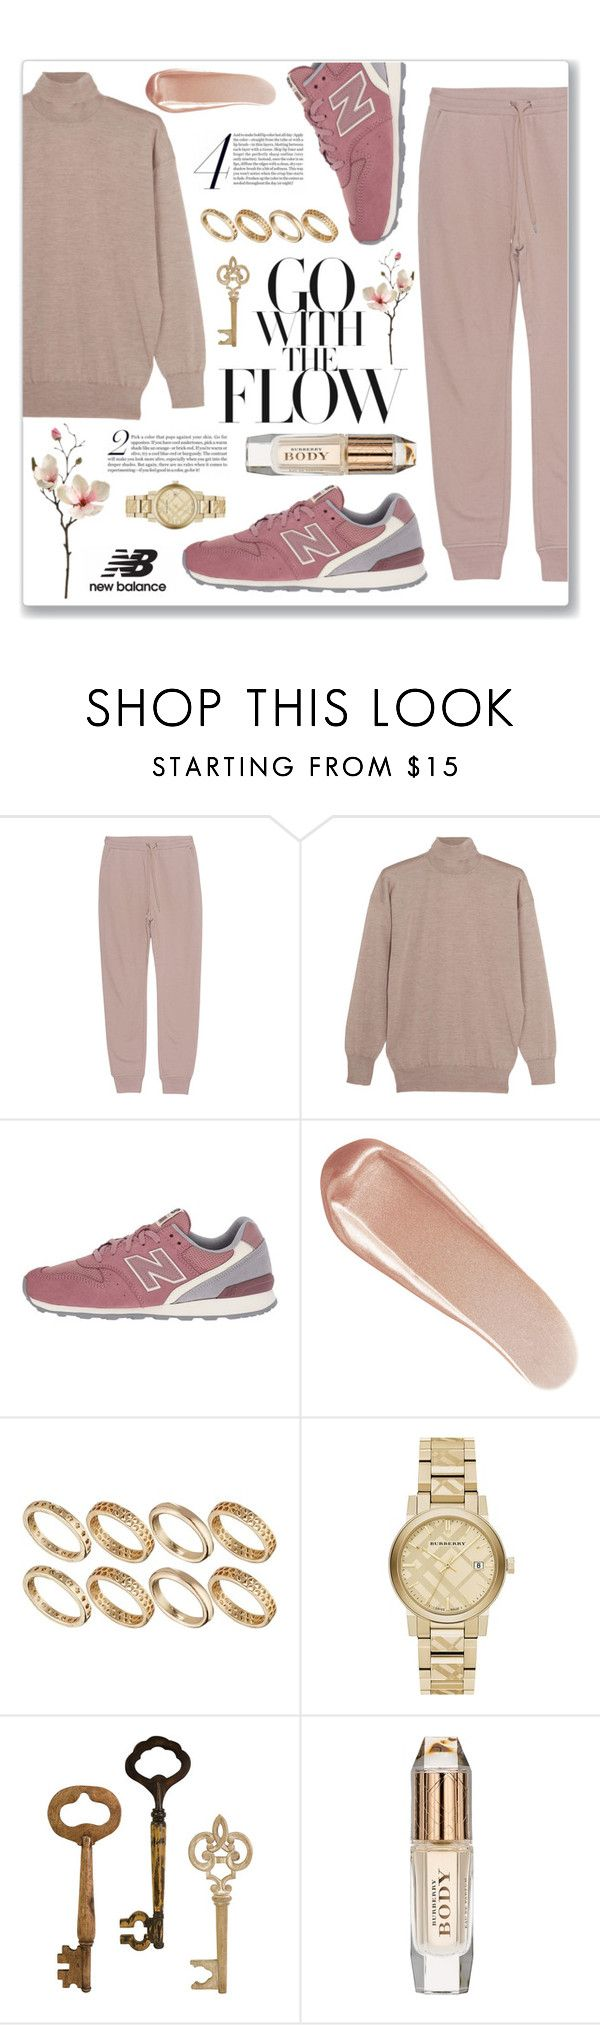 """Run the World in New Balance"" by plnzh ❤ liked on Polyvore featuring T By Alexander Wang, Tom Ford, New Balance Classics, NARS Cosmetics, ASOS and Burberry"